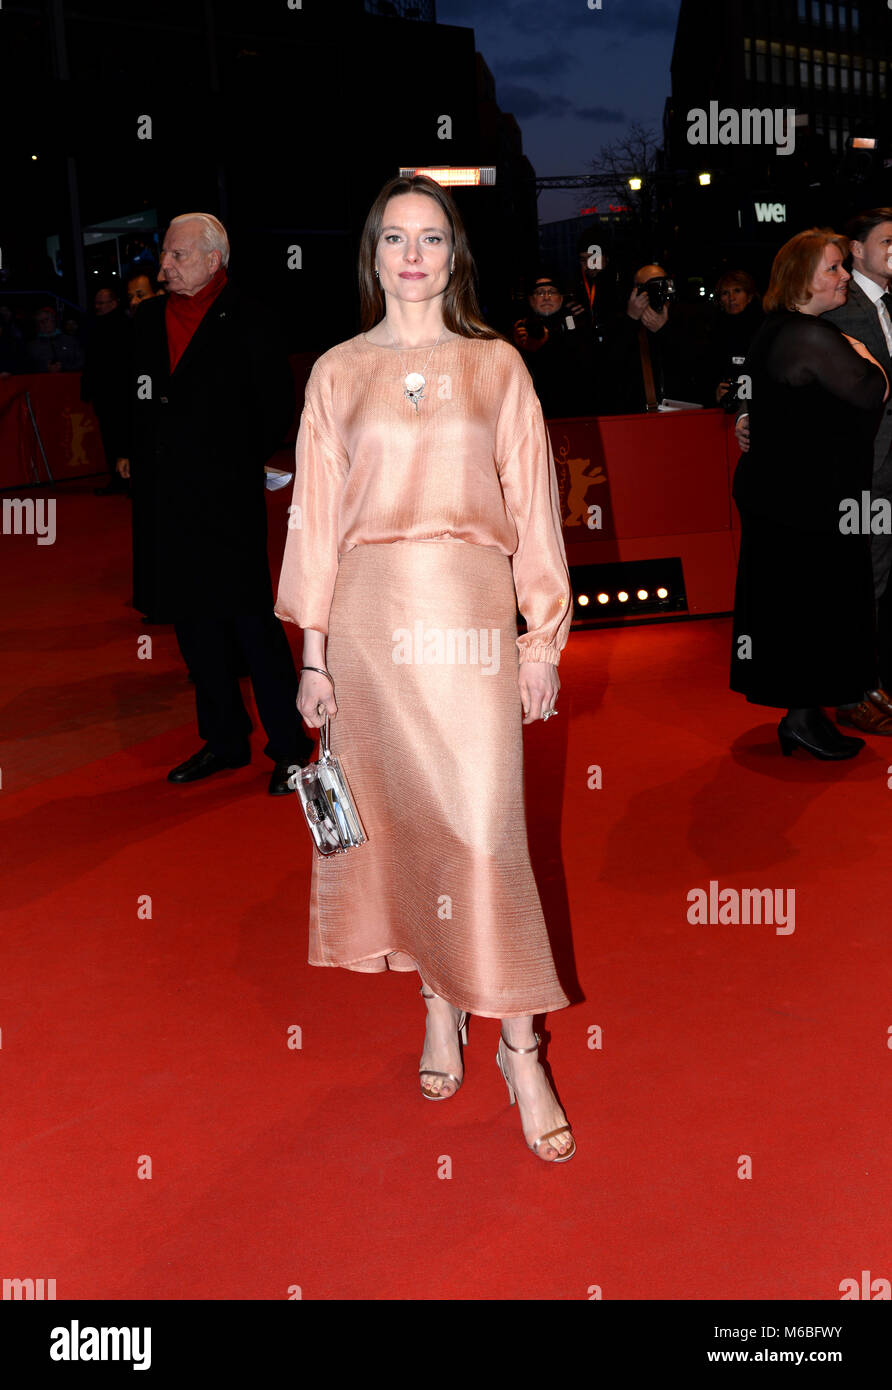 February 24th, 2018 - Berlin  Celebrities attend the closing ceremony of the Berlinale Film Festival 2018. Stock Photo